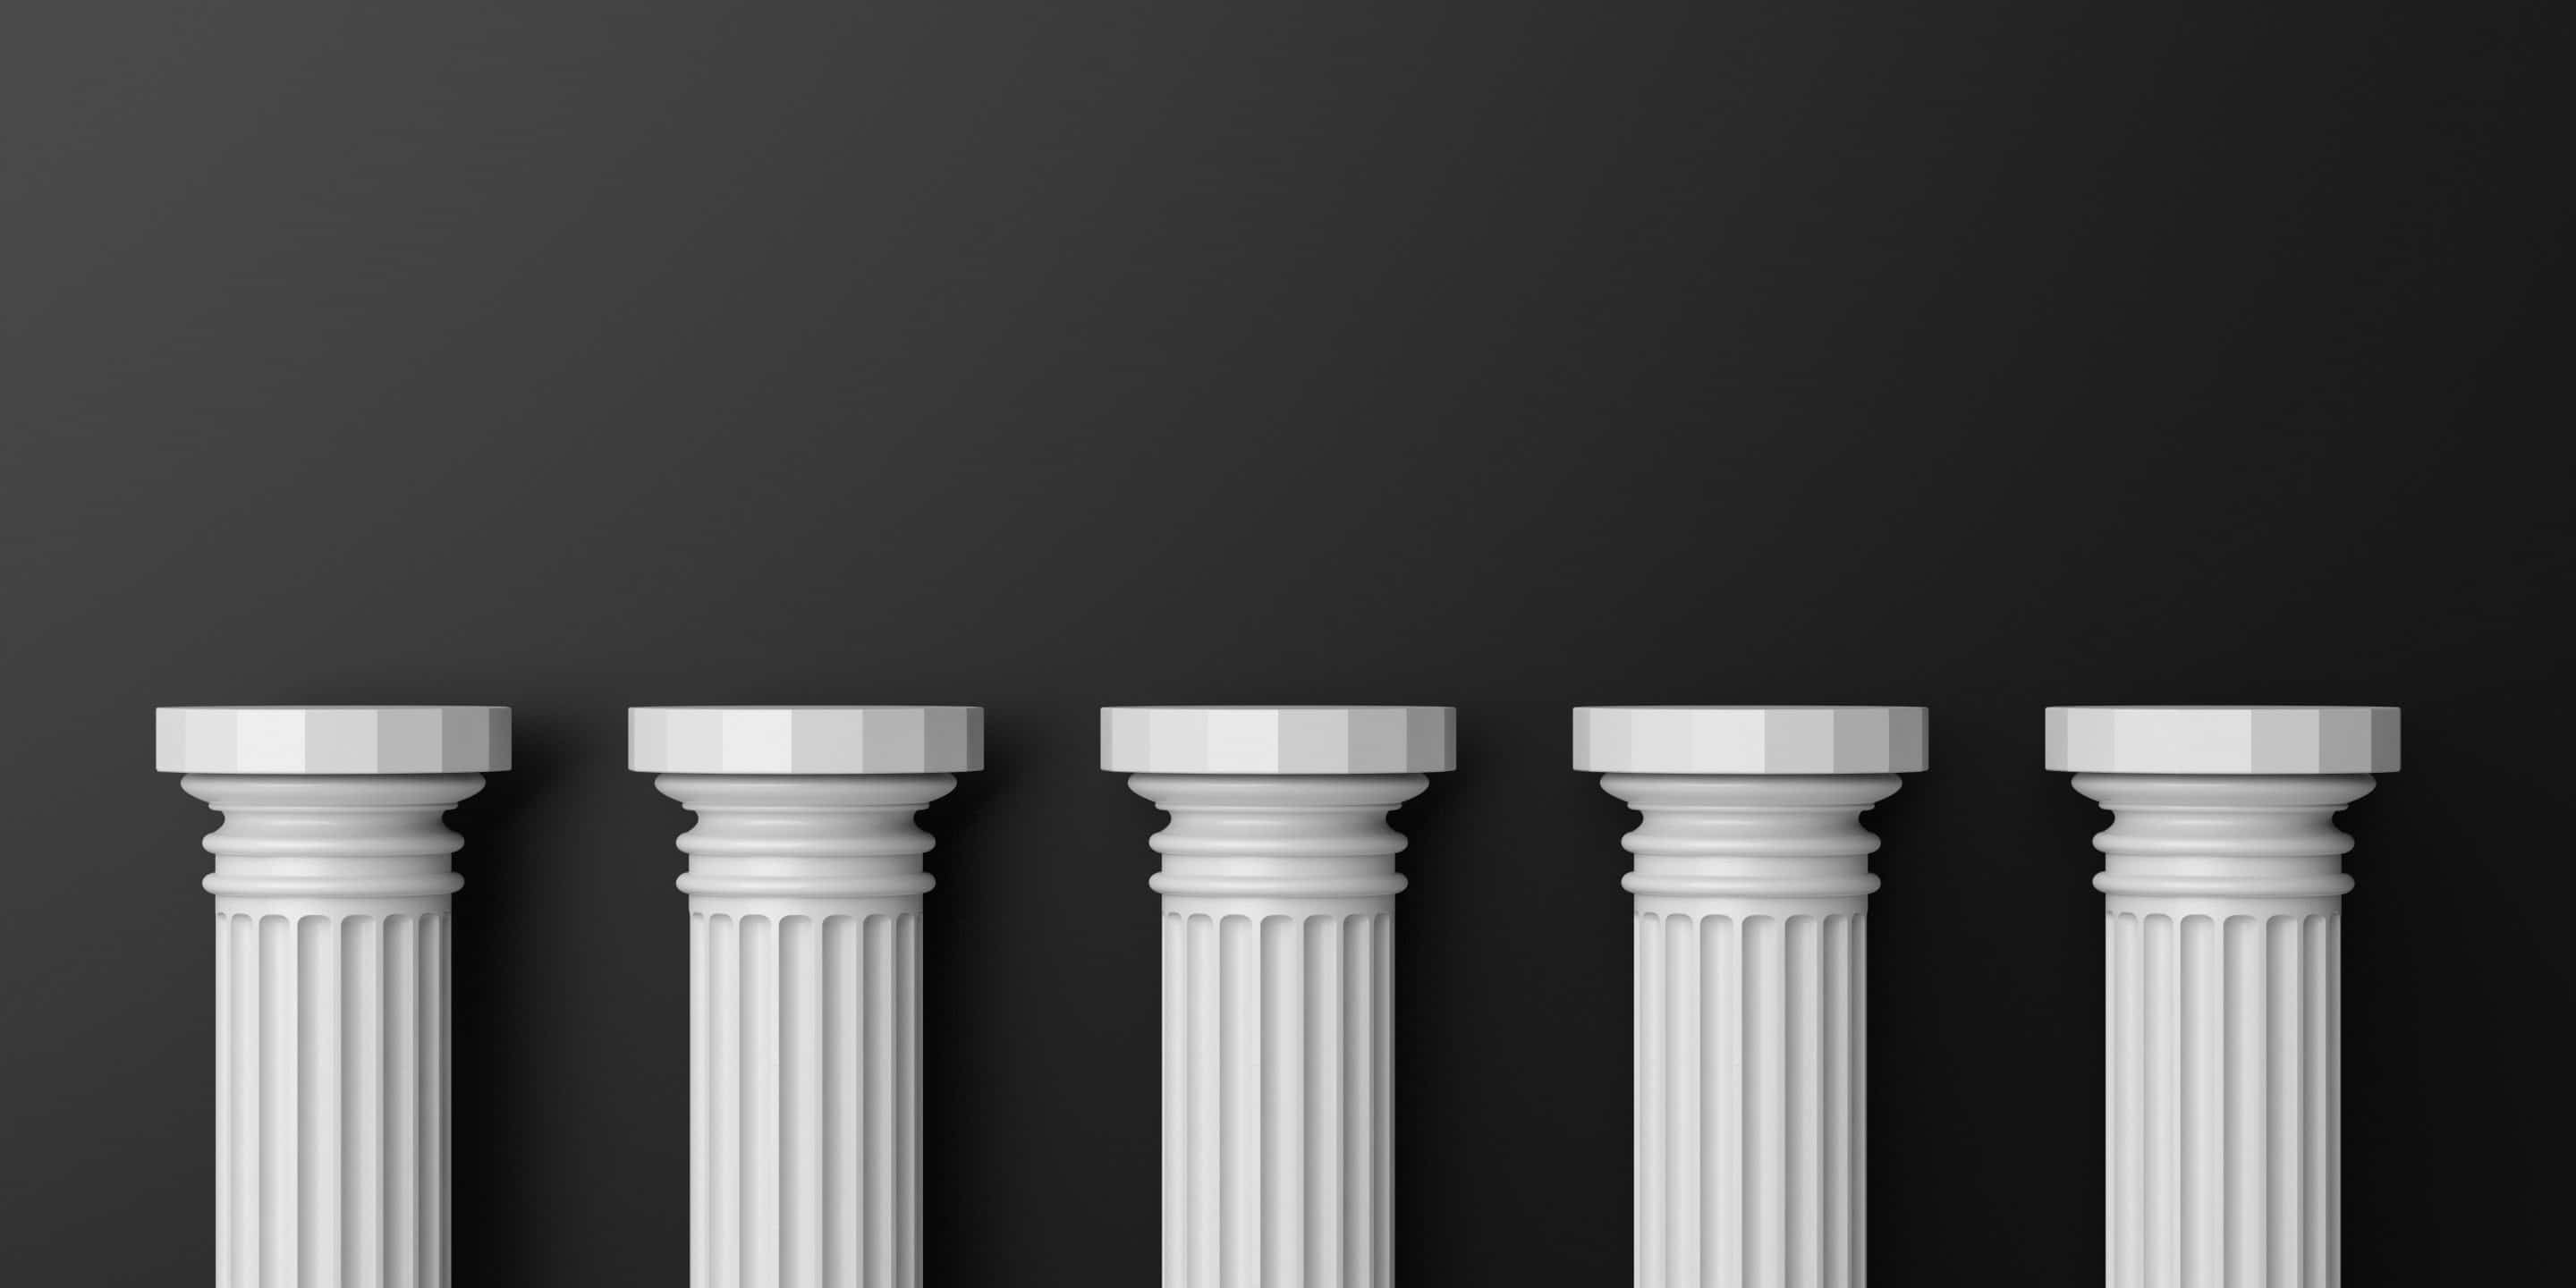 The Five Pillars of Creative Problem Solving